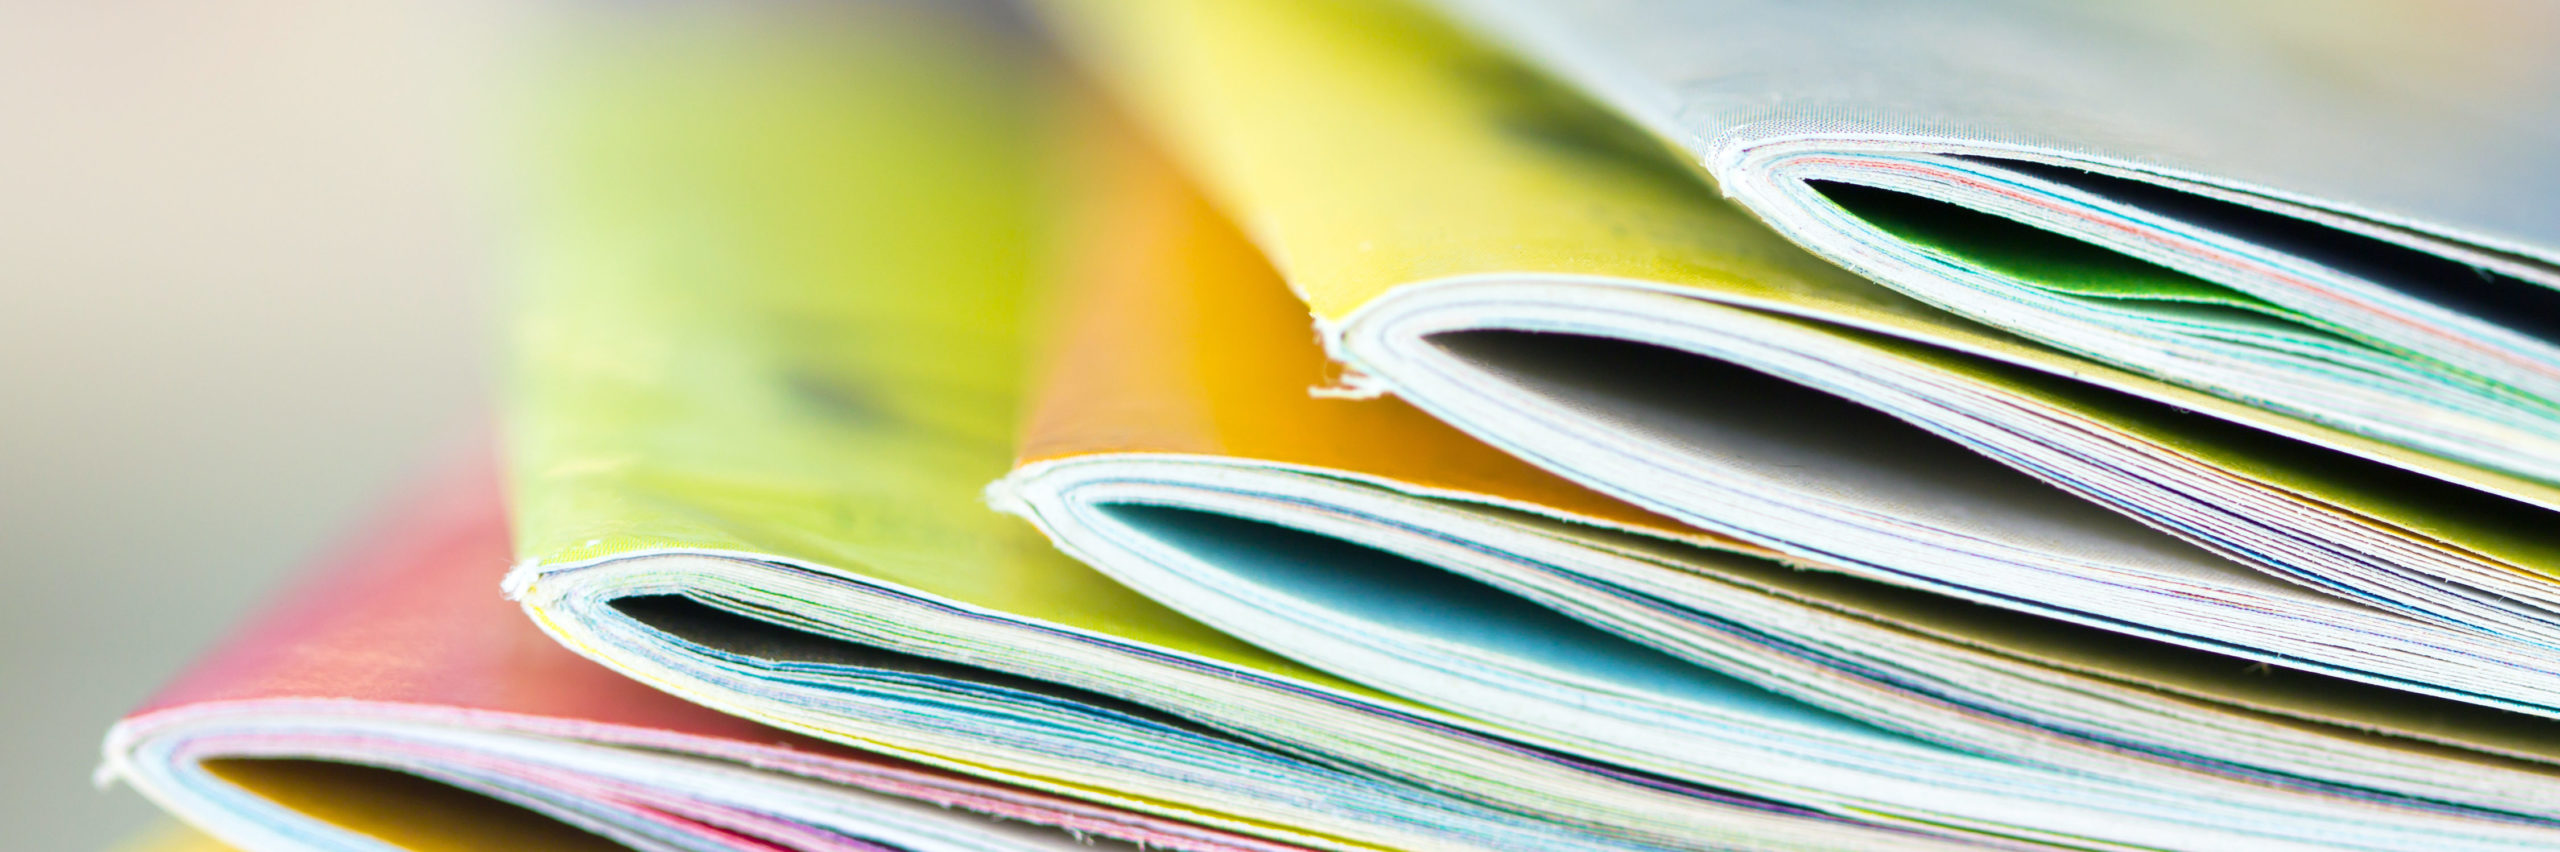 Close up edge of colorful magazine stacking with blurry bookshelf background for publication and publishing concept , extremely DOF - Image